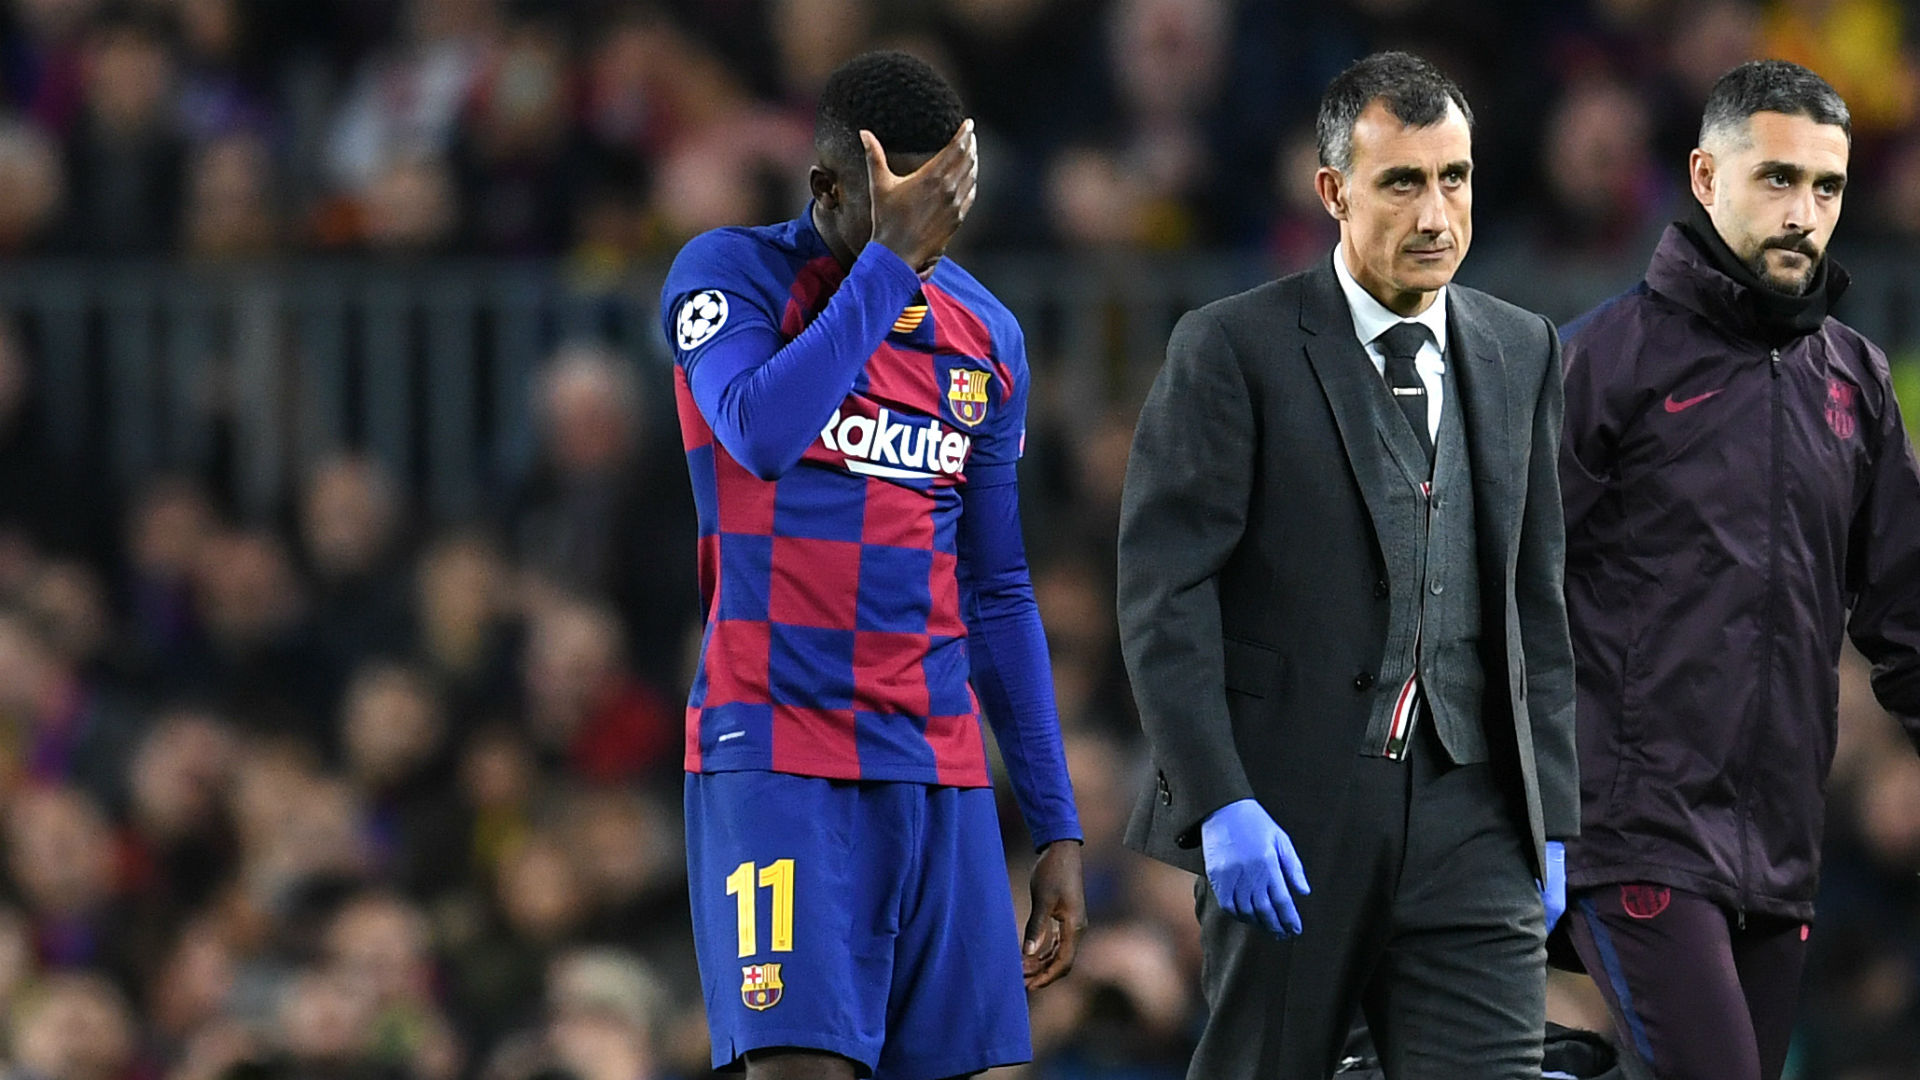 Dembele to have hamstring surgery on Tuesday, Barcelona confirm